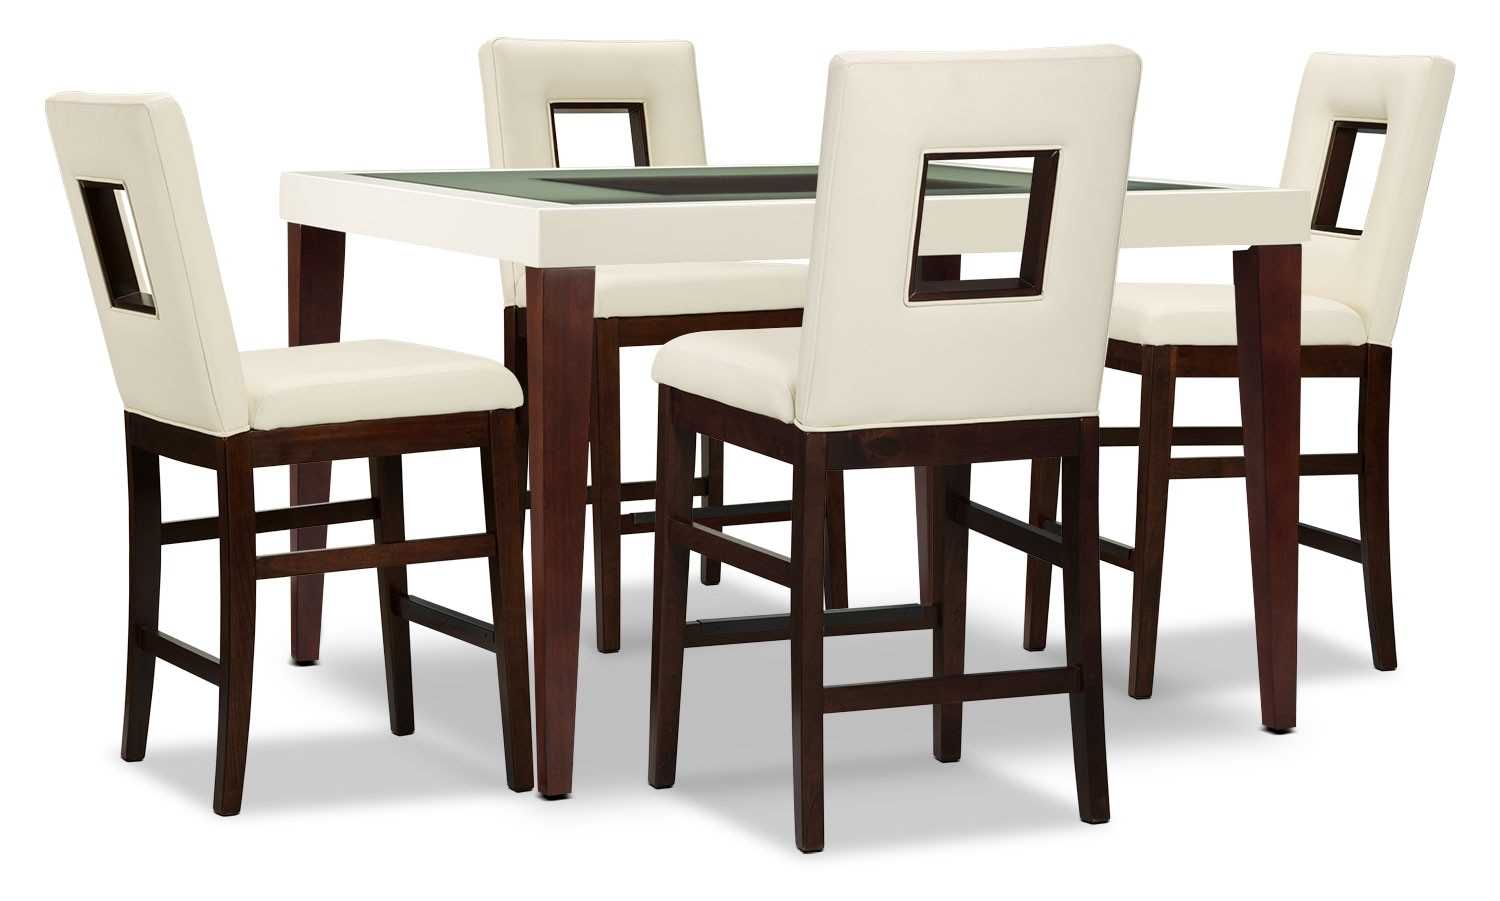 Dining Room Furniture - Zenoe 5-Piece Counter-Height Dining Package